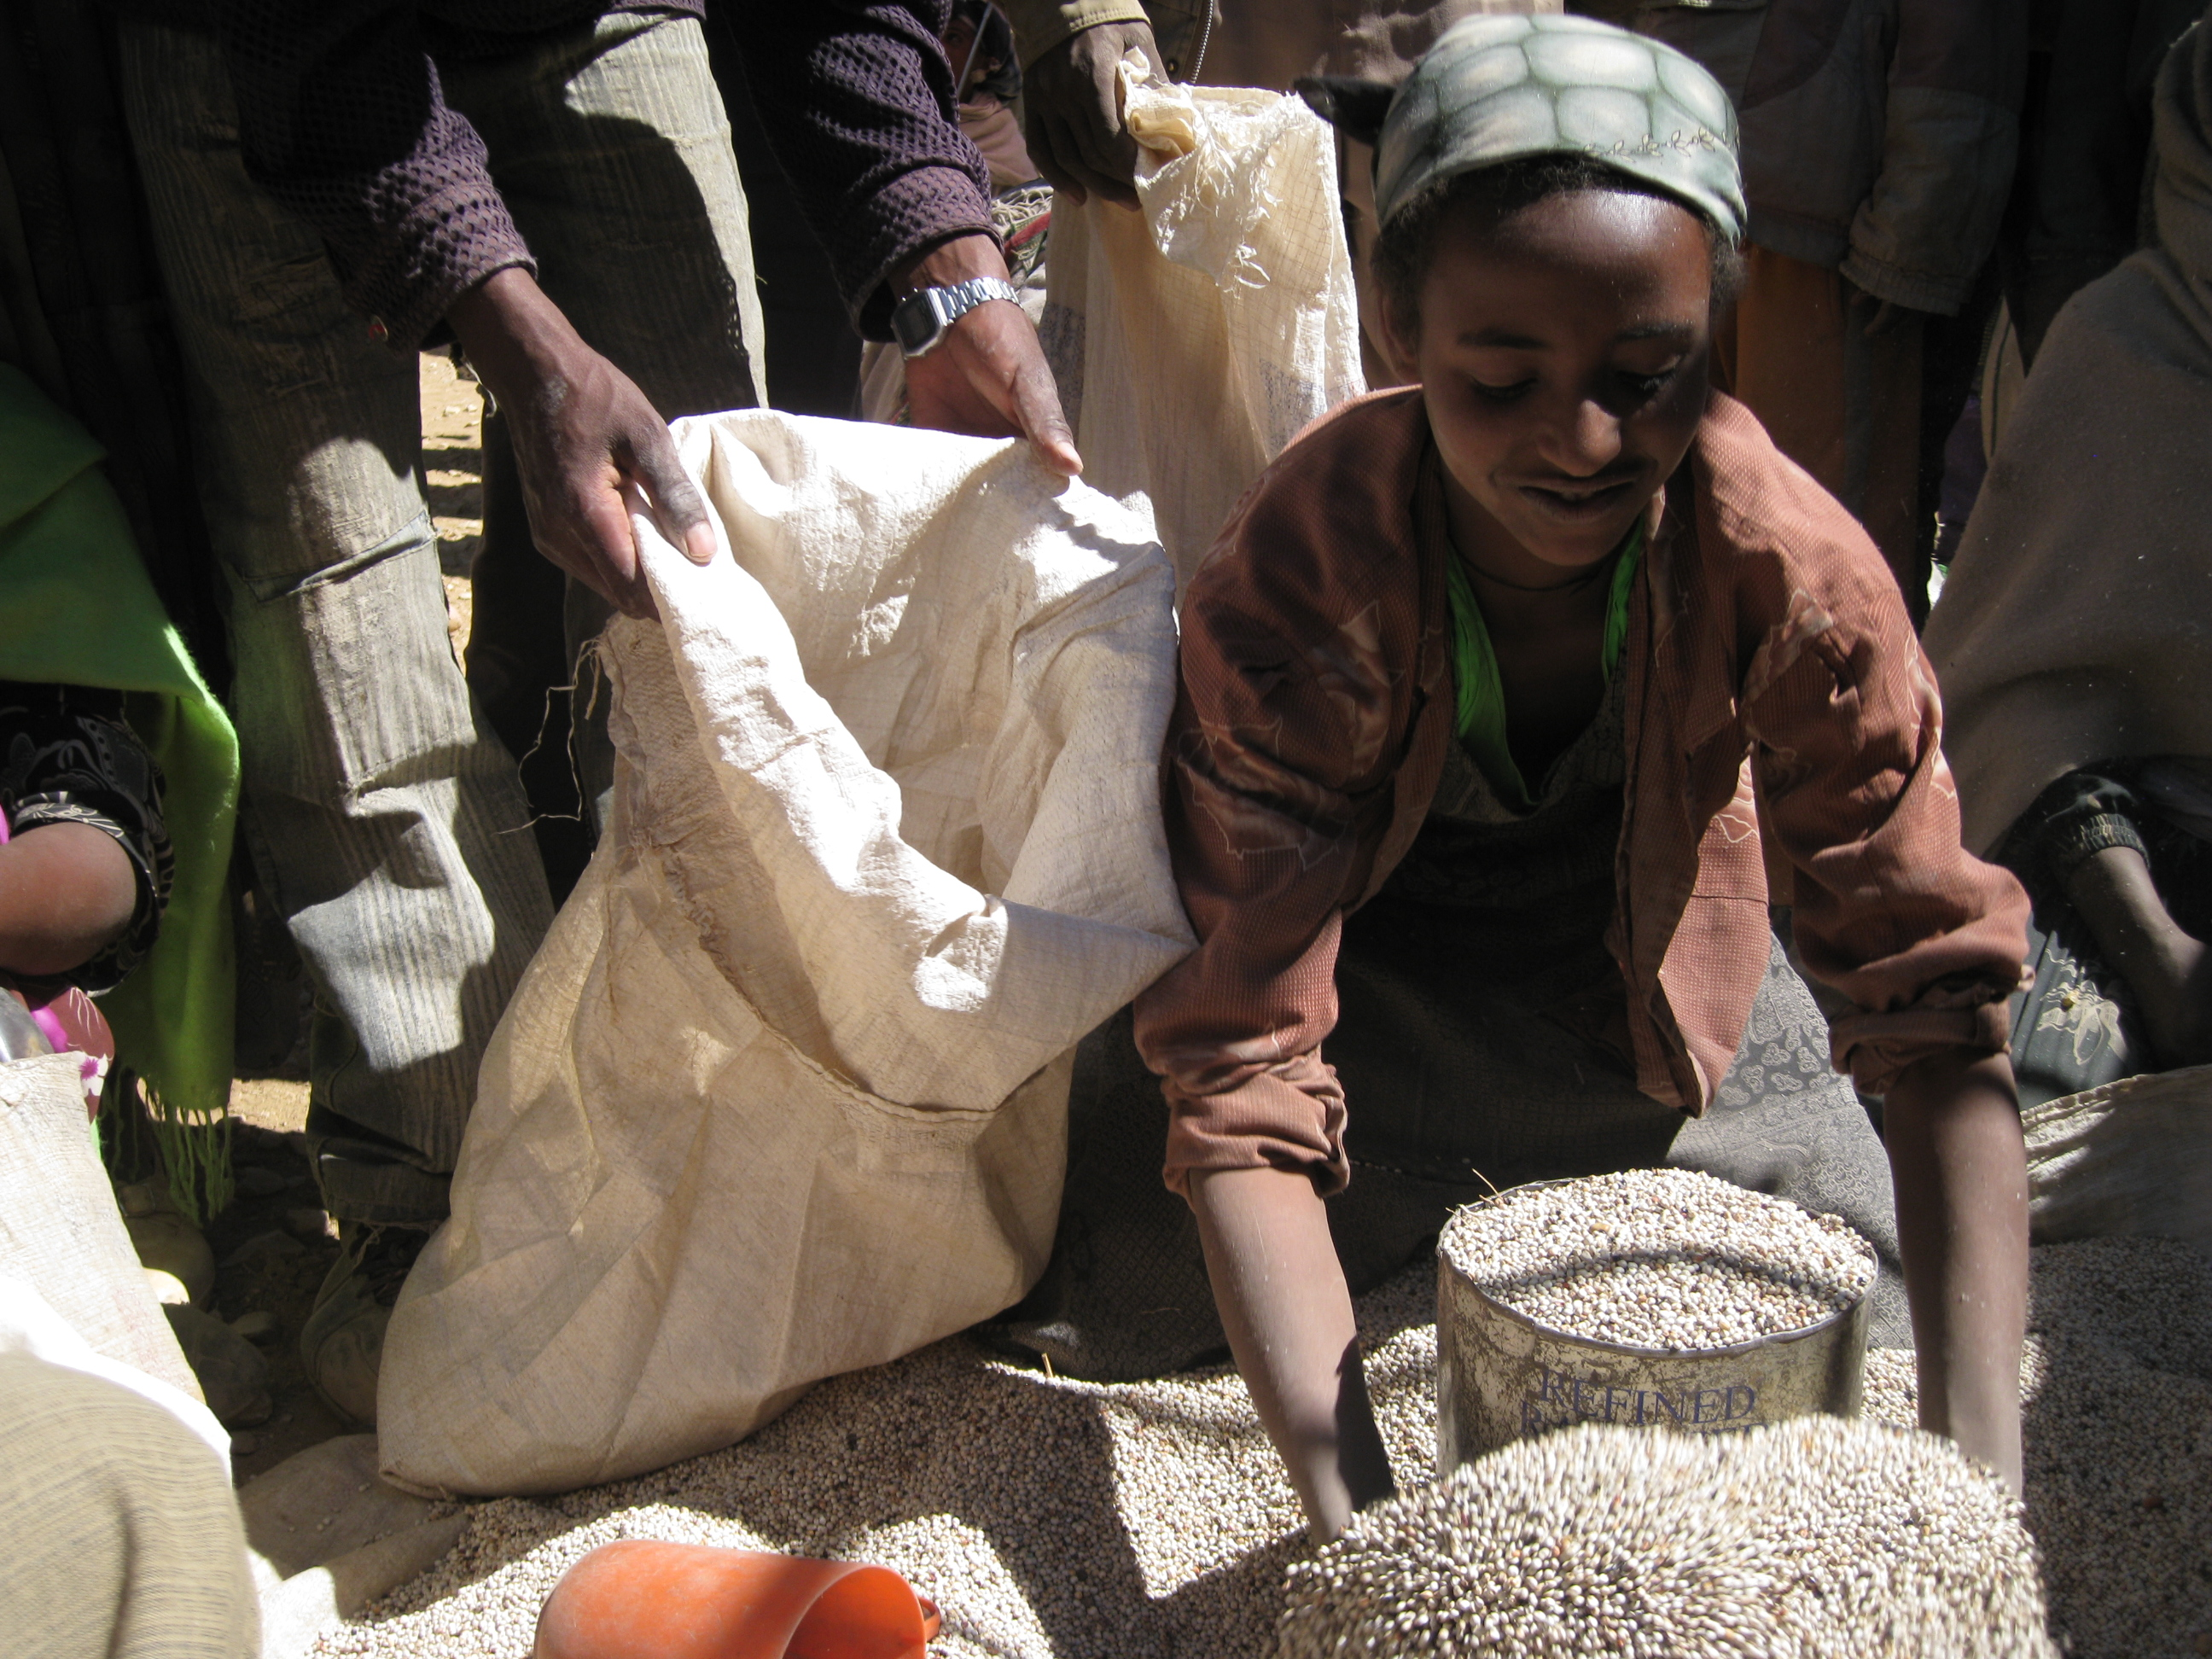 Distribution of relief aid - sorghum - to residents of Zarema village, Atsbi Womberta woreda in Tigray region